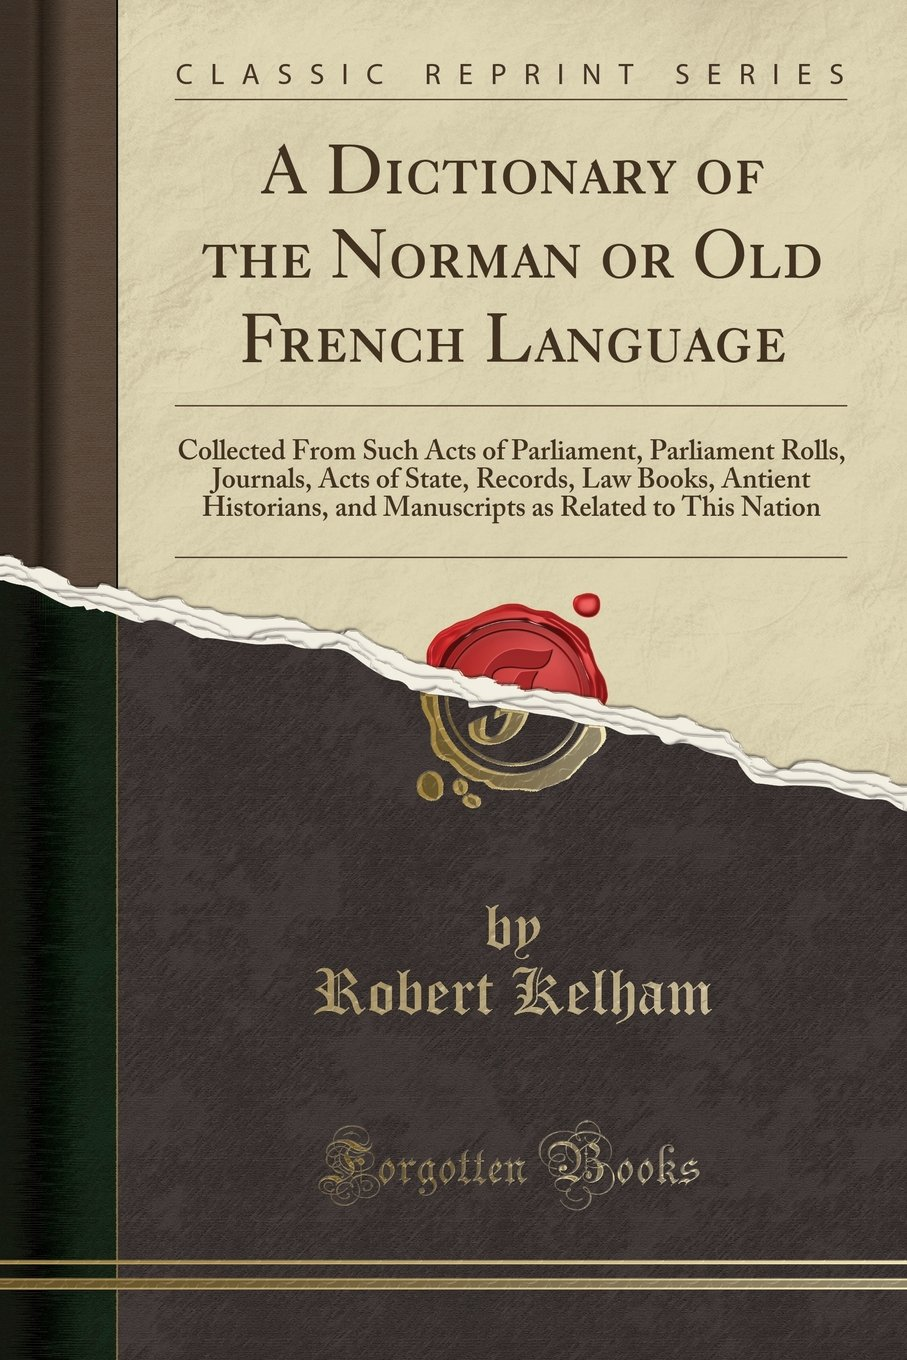 A Dictionary of the Norman or Old French Language: Collected From Such Acts of Parliament, Parliament Rolls, Journals, Acts of State, Records, Law ... as Related to This Nation (Classic Reprint) ebook